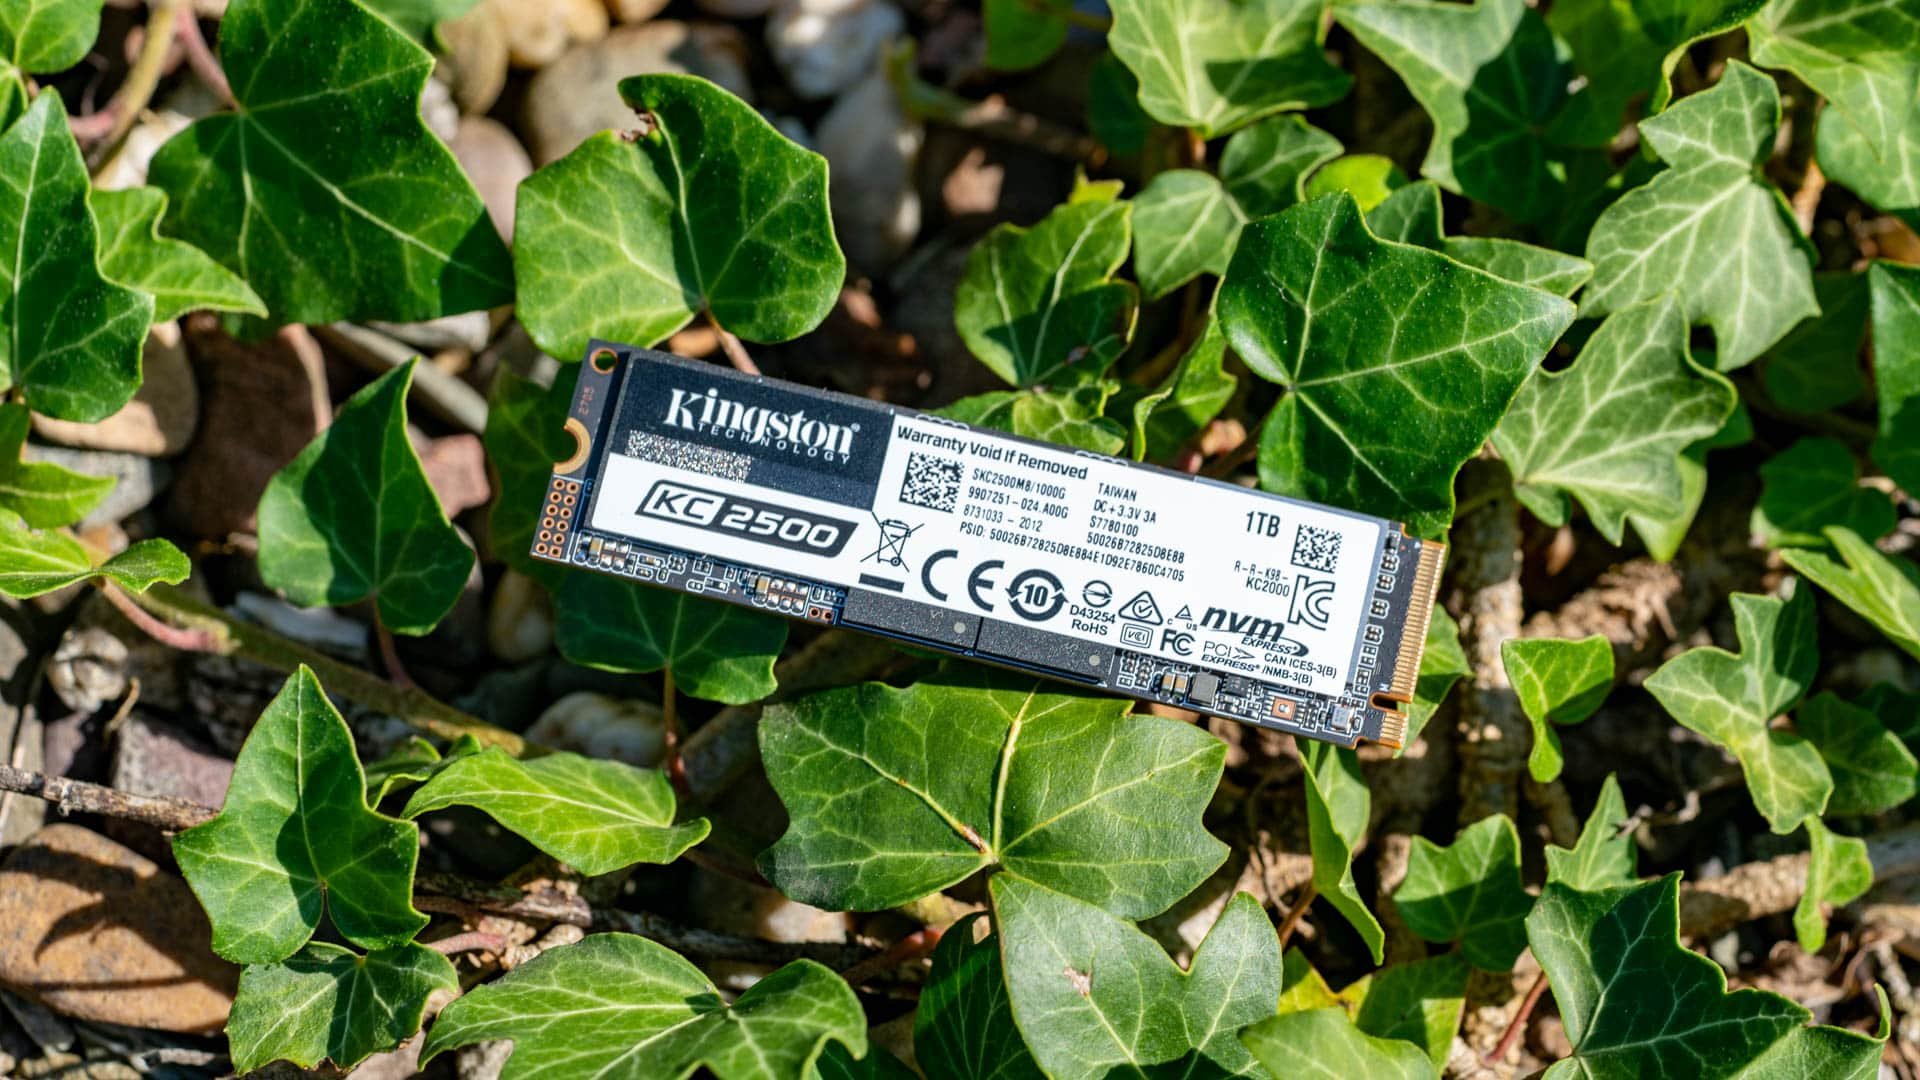 Die Kingston KC2500 SSD im Test